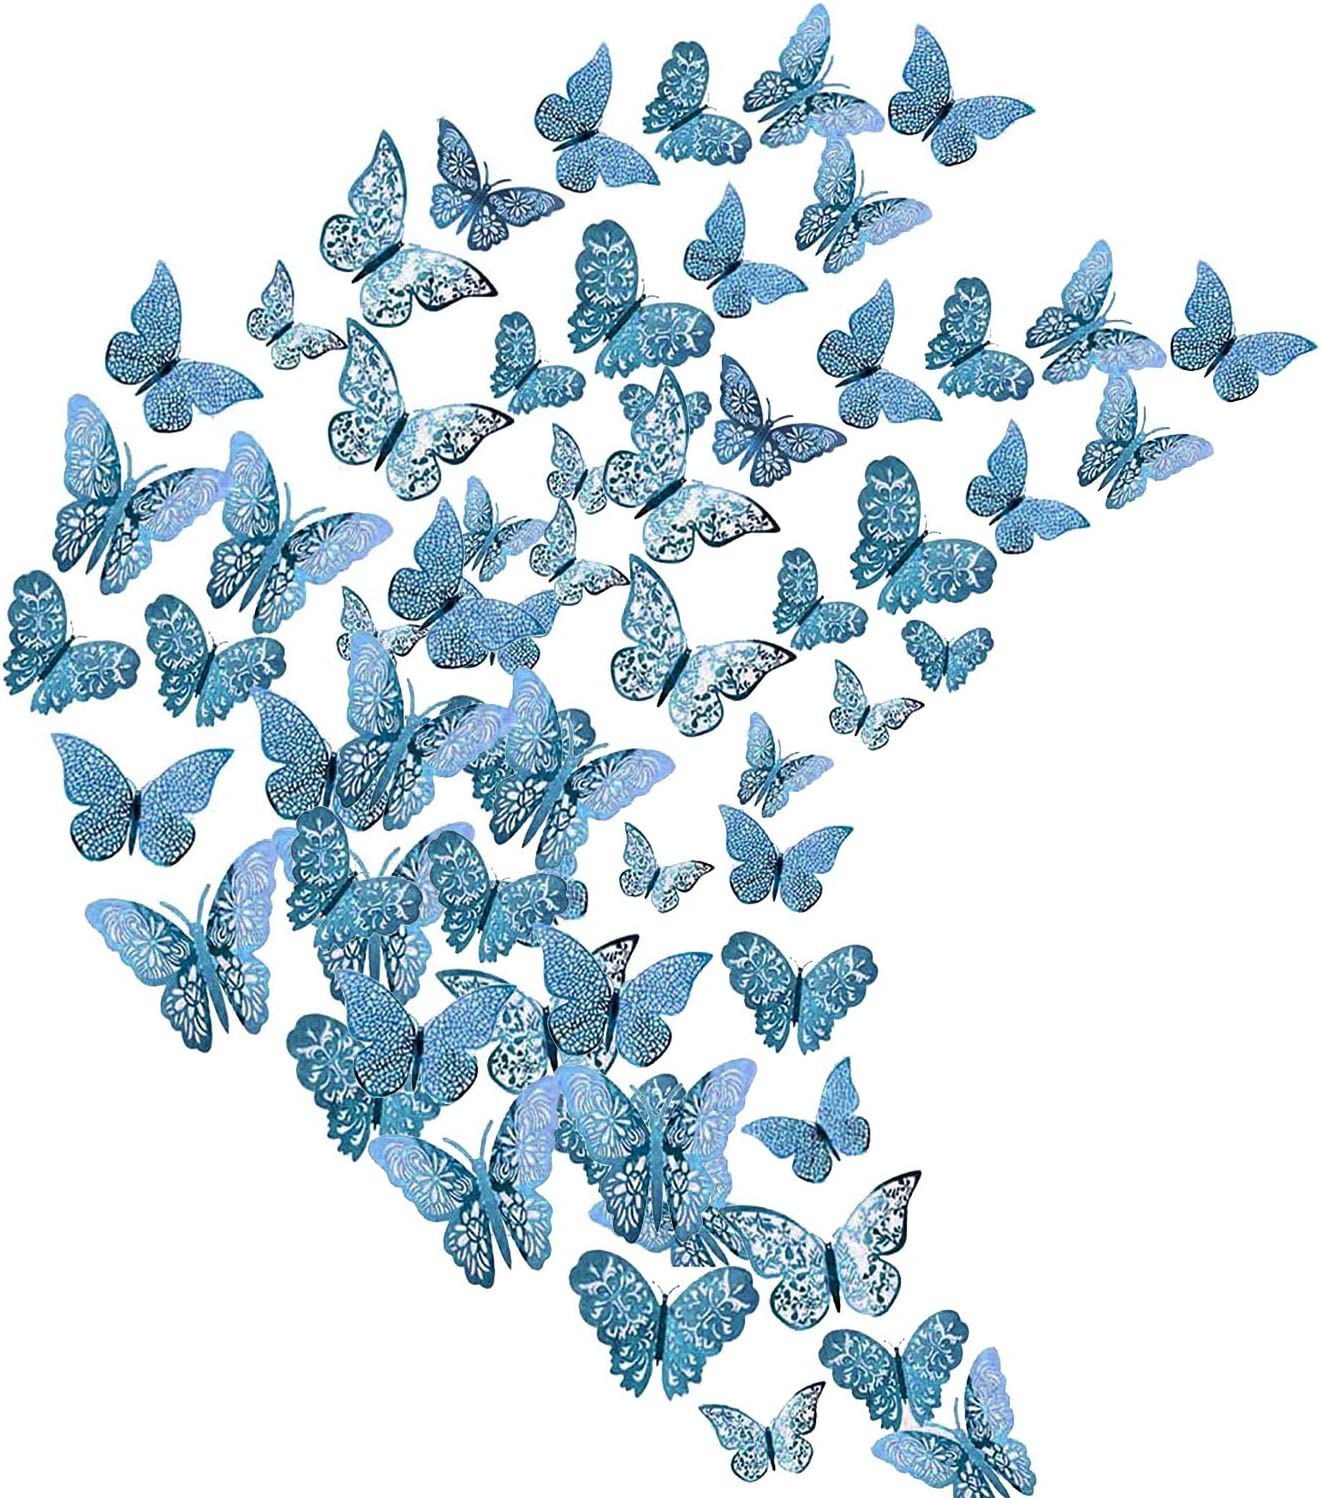 Flymind 144Pcs Butterfly Decor Stickers, 3D Wall Decals Metallic Art Decorations Sticker 3 Sizes for Home Living Room Babys Classroom Offices Girl Boy Bedroom Showcase Nursery Wall Art Décor(Blue)